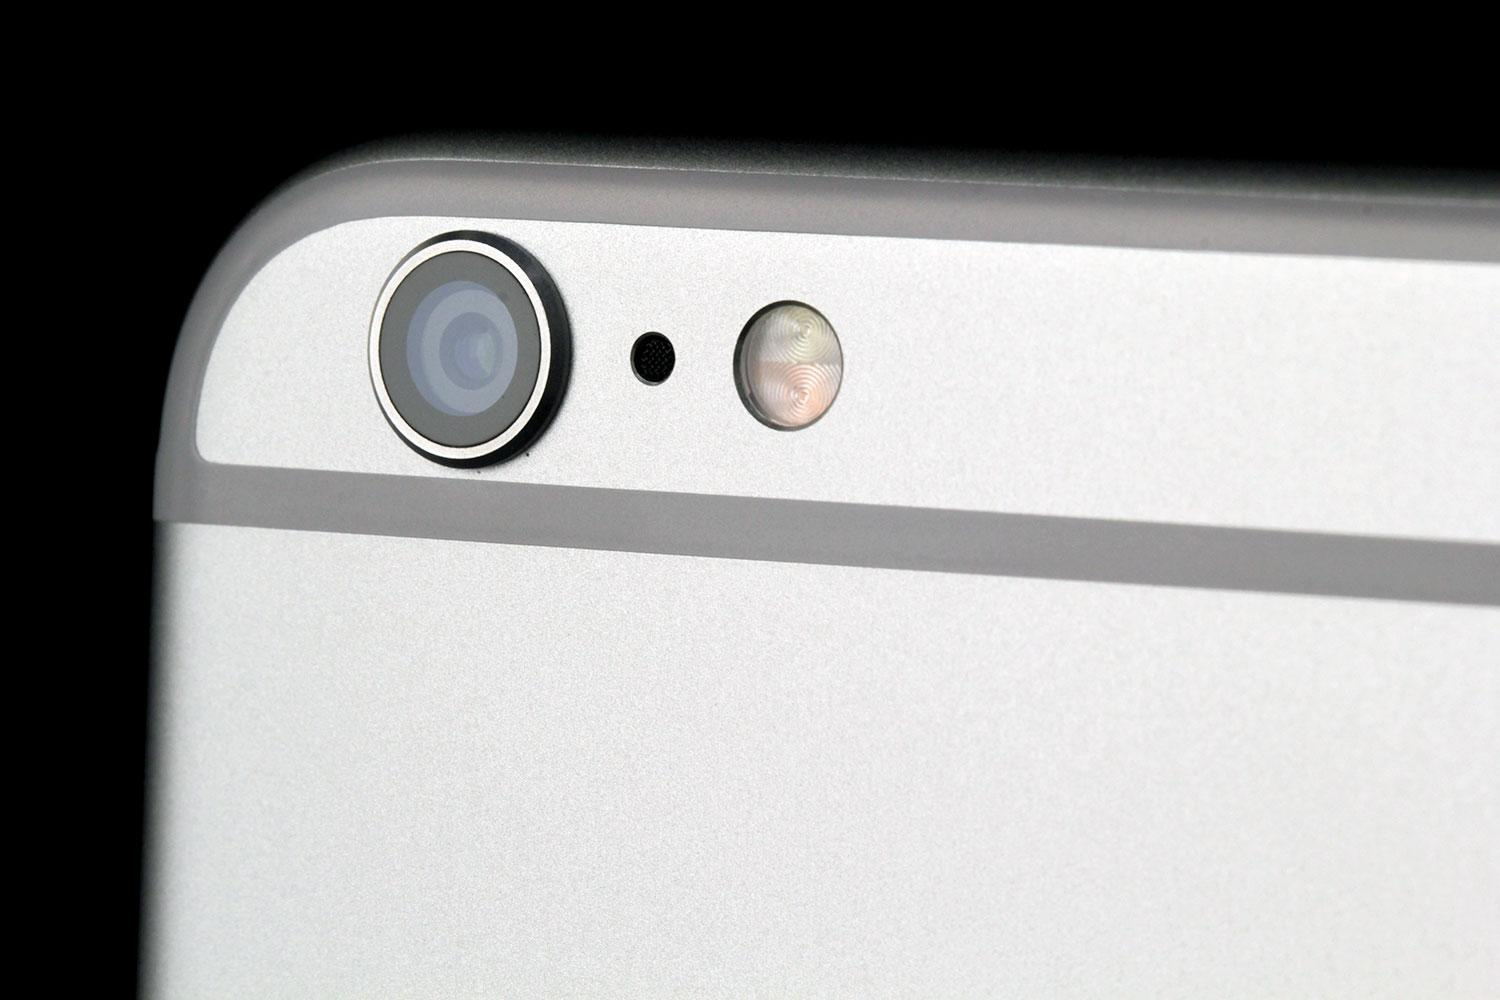 Dodgy iPhone 6 Plus camera? Apple offers to fix defective devices ...